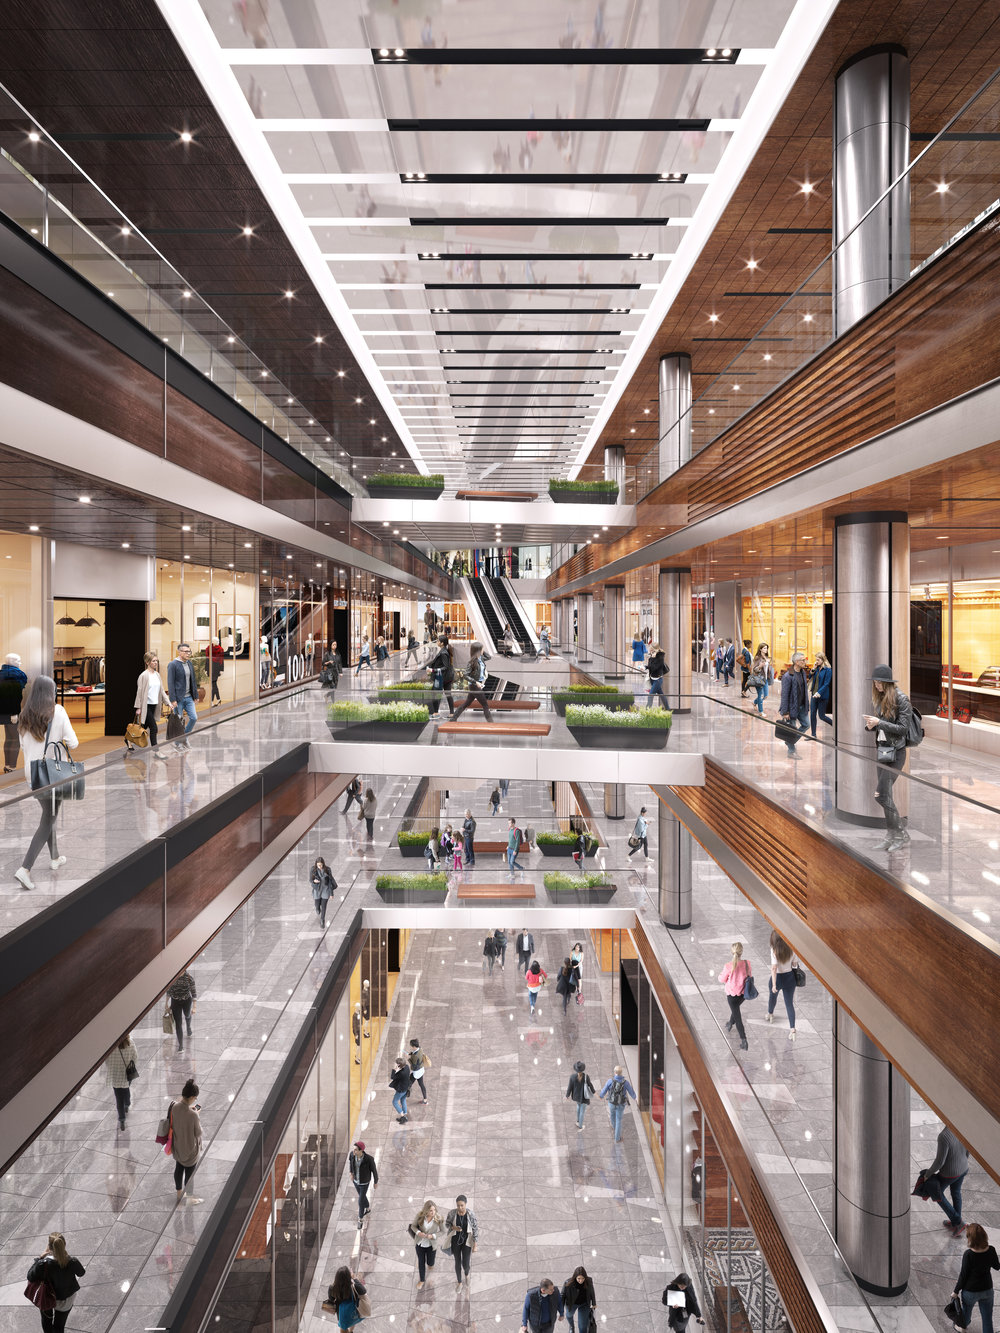 North Gallery, The Shops & Restaurants at Hudson Yards. Courtesy of Related-Oxford